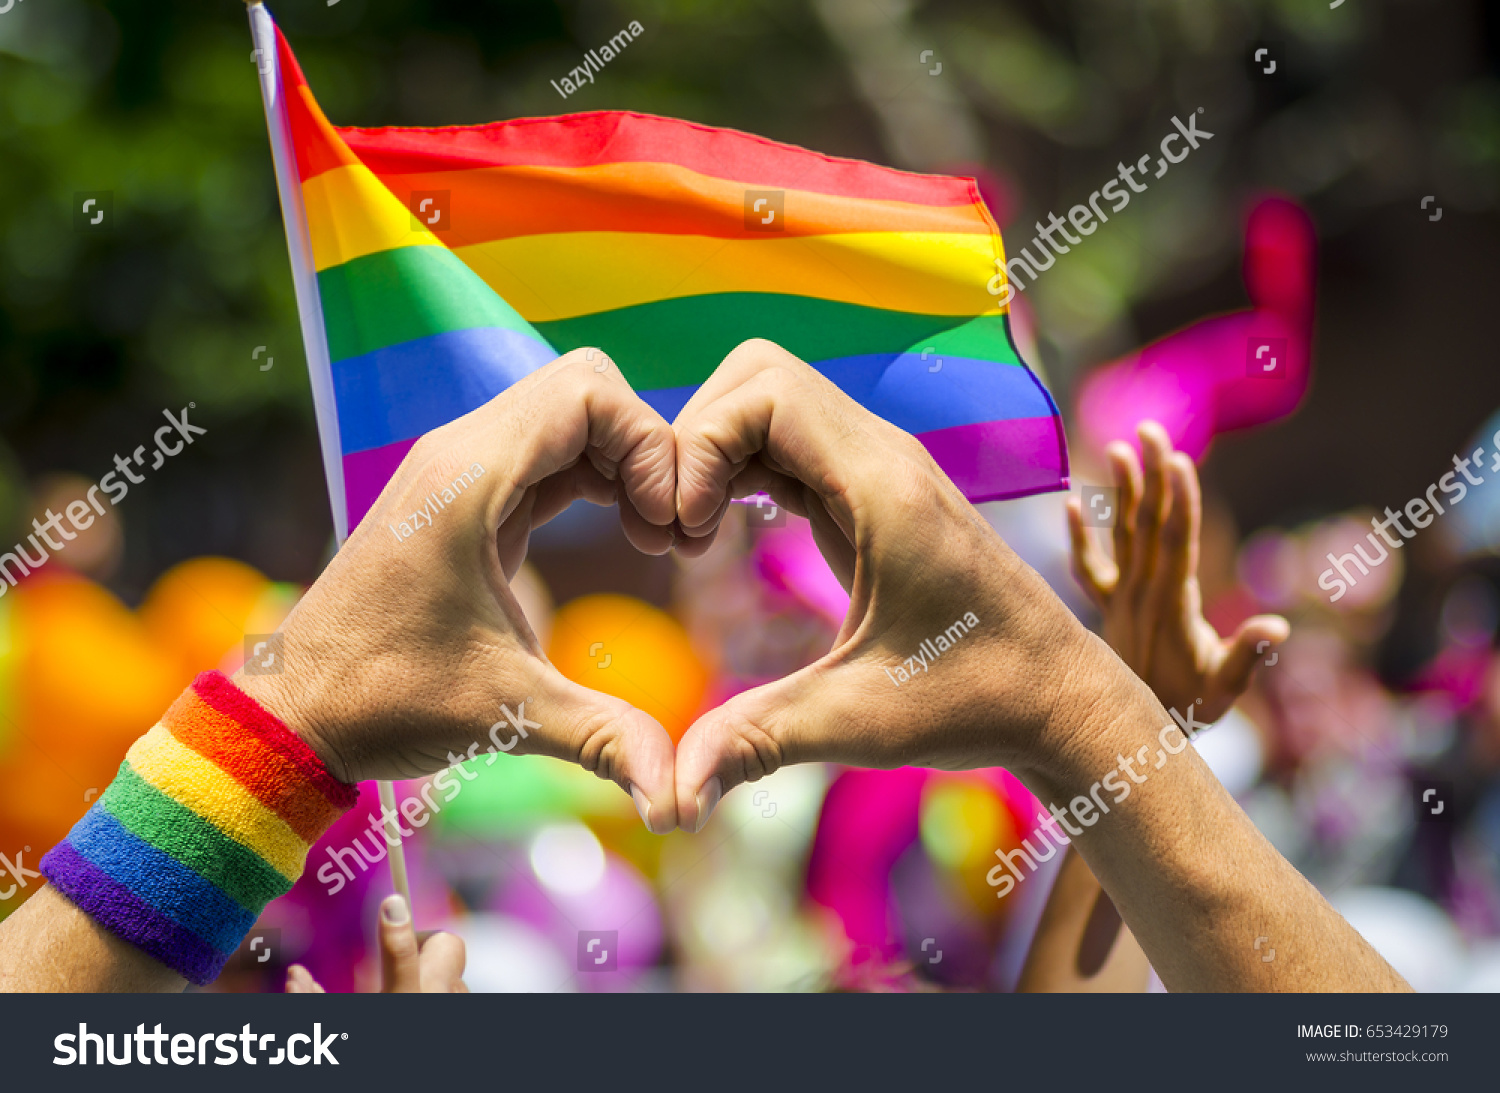 Supporting hands make heart sign and wave in front of a rainbow flag flying on the sidelines of a summer gay pride parade #653429179